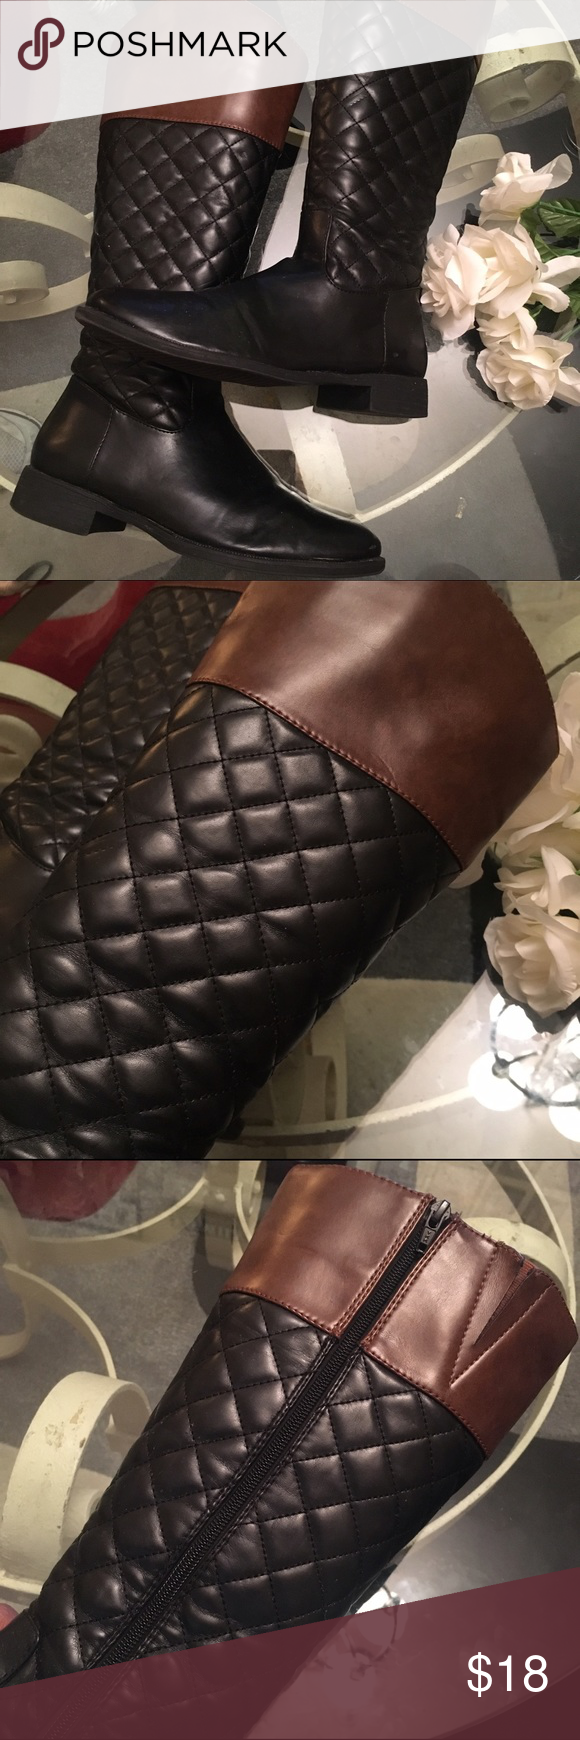 Woman's kohls Riding boots Good used condition! Has Some wear. Sole in excellent Condition! Boots have slight creasing (not noticeable when worn) . Have a few scuffs on toes!  One boot has a small area where a crease is very prominent! Plz refer to pics! Price reflective of wear! khols Shoes